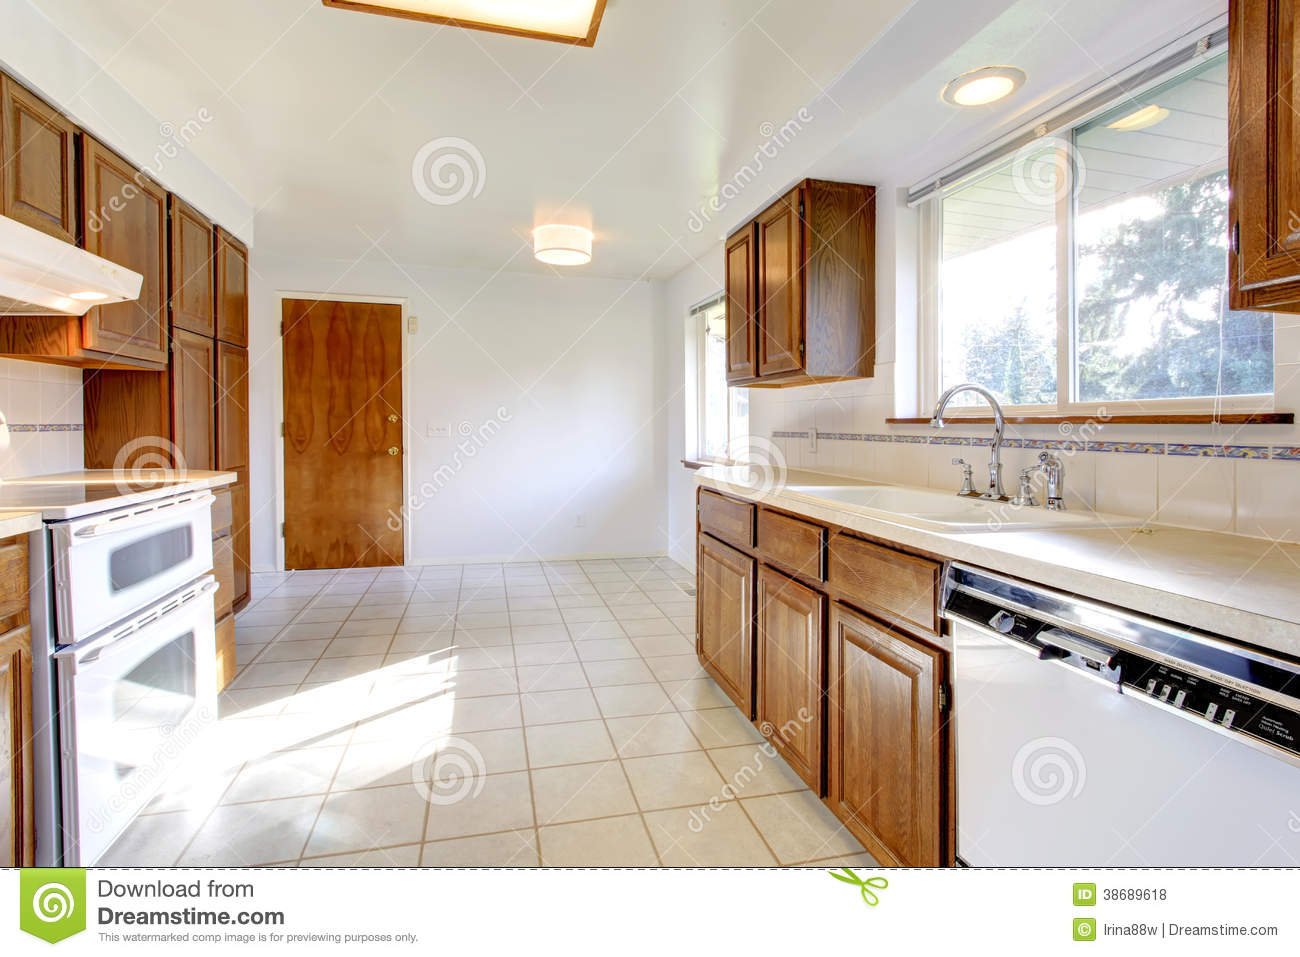 White Kitchen Room With Brown Cabinets Stock Photo Image Of White Cabinets 38689618